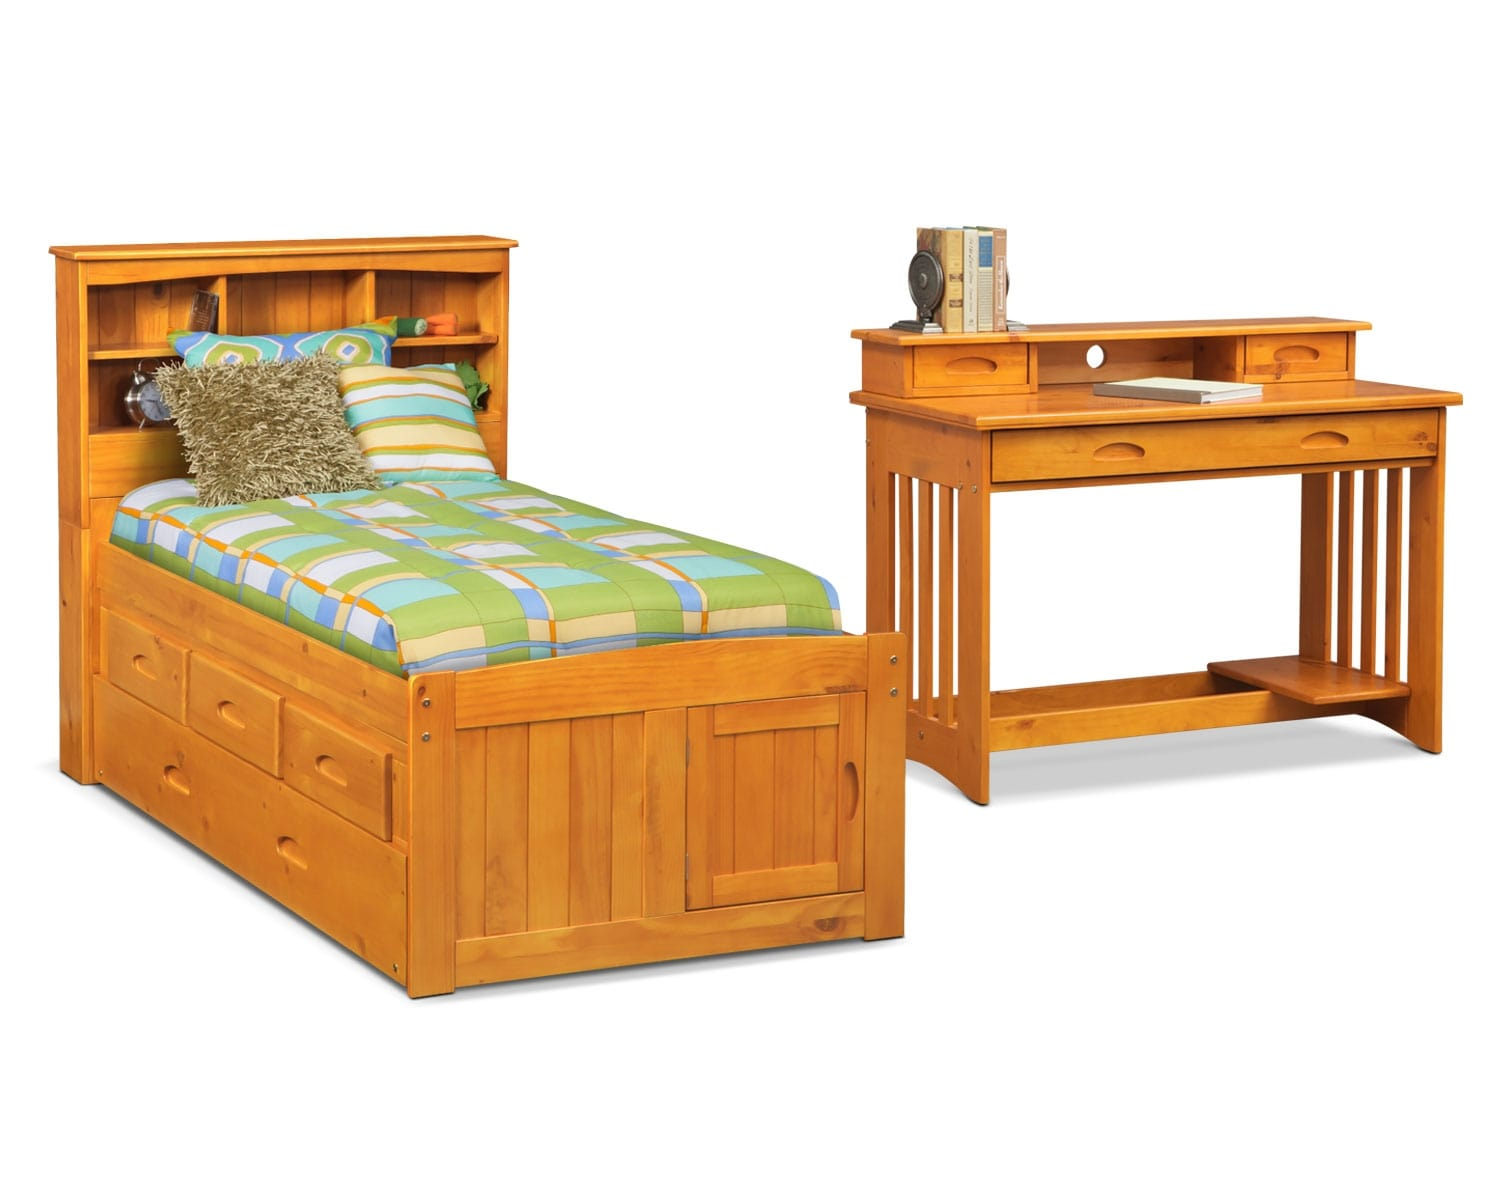 The Ranger Pine Bookcase Bed Collection